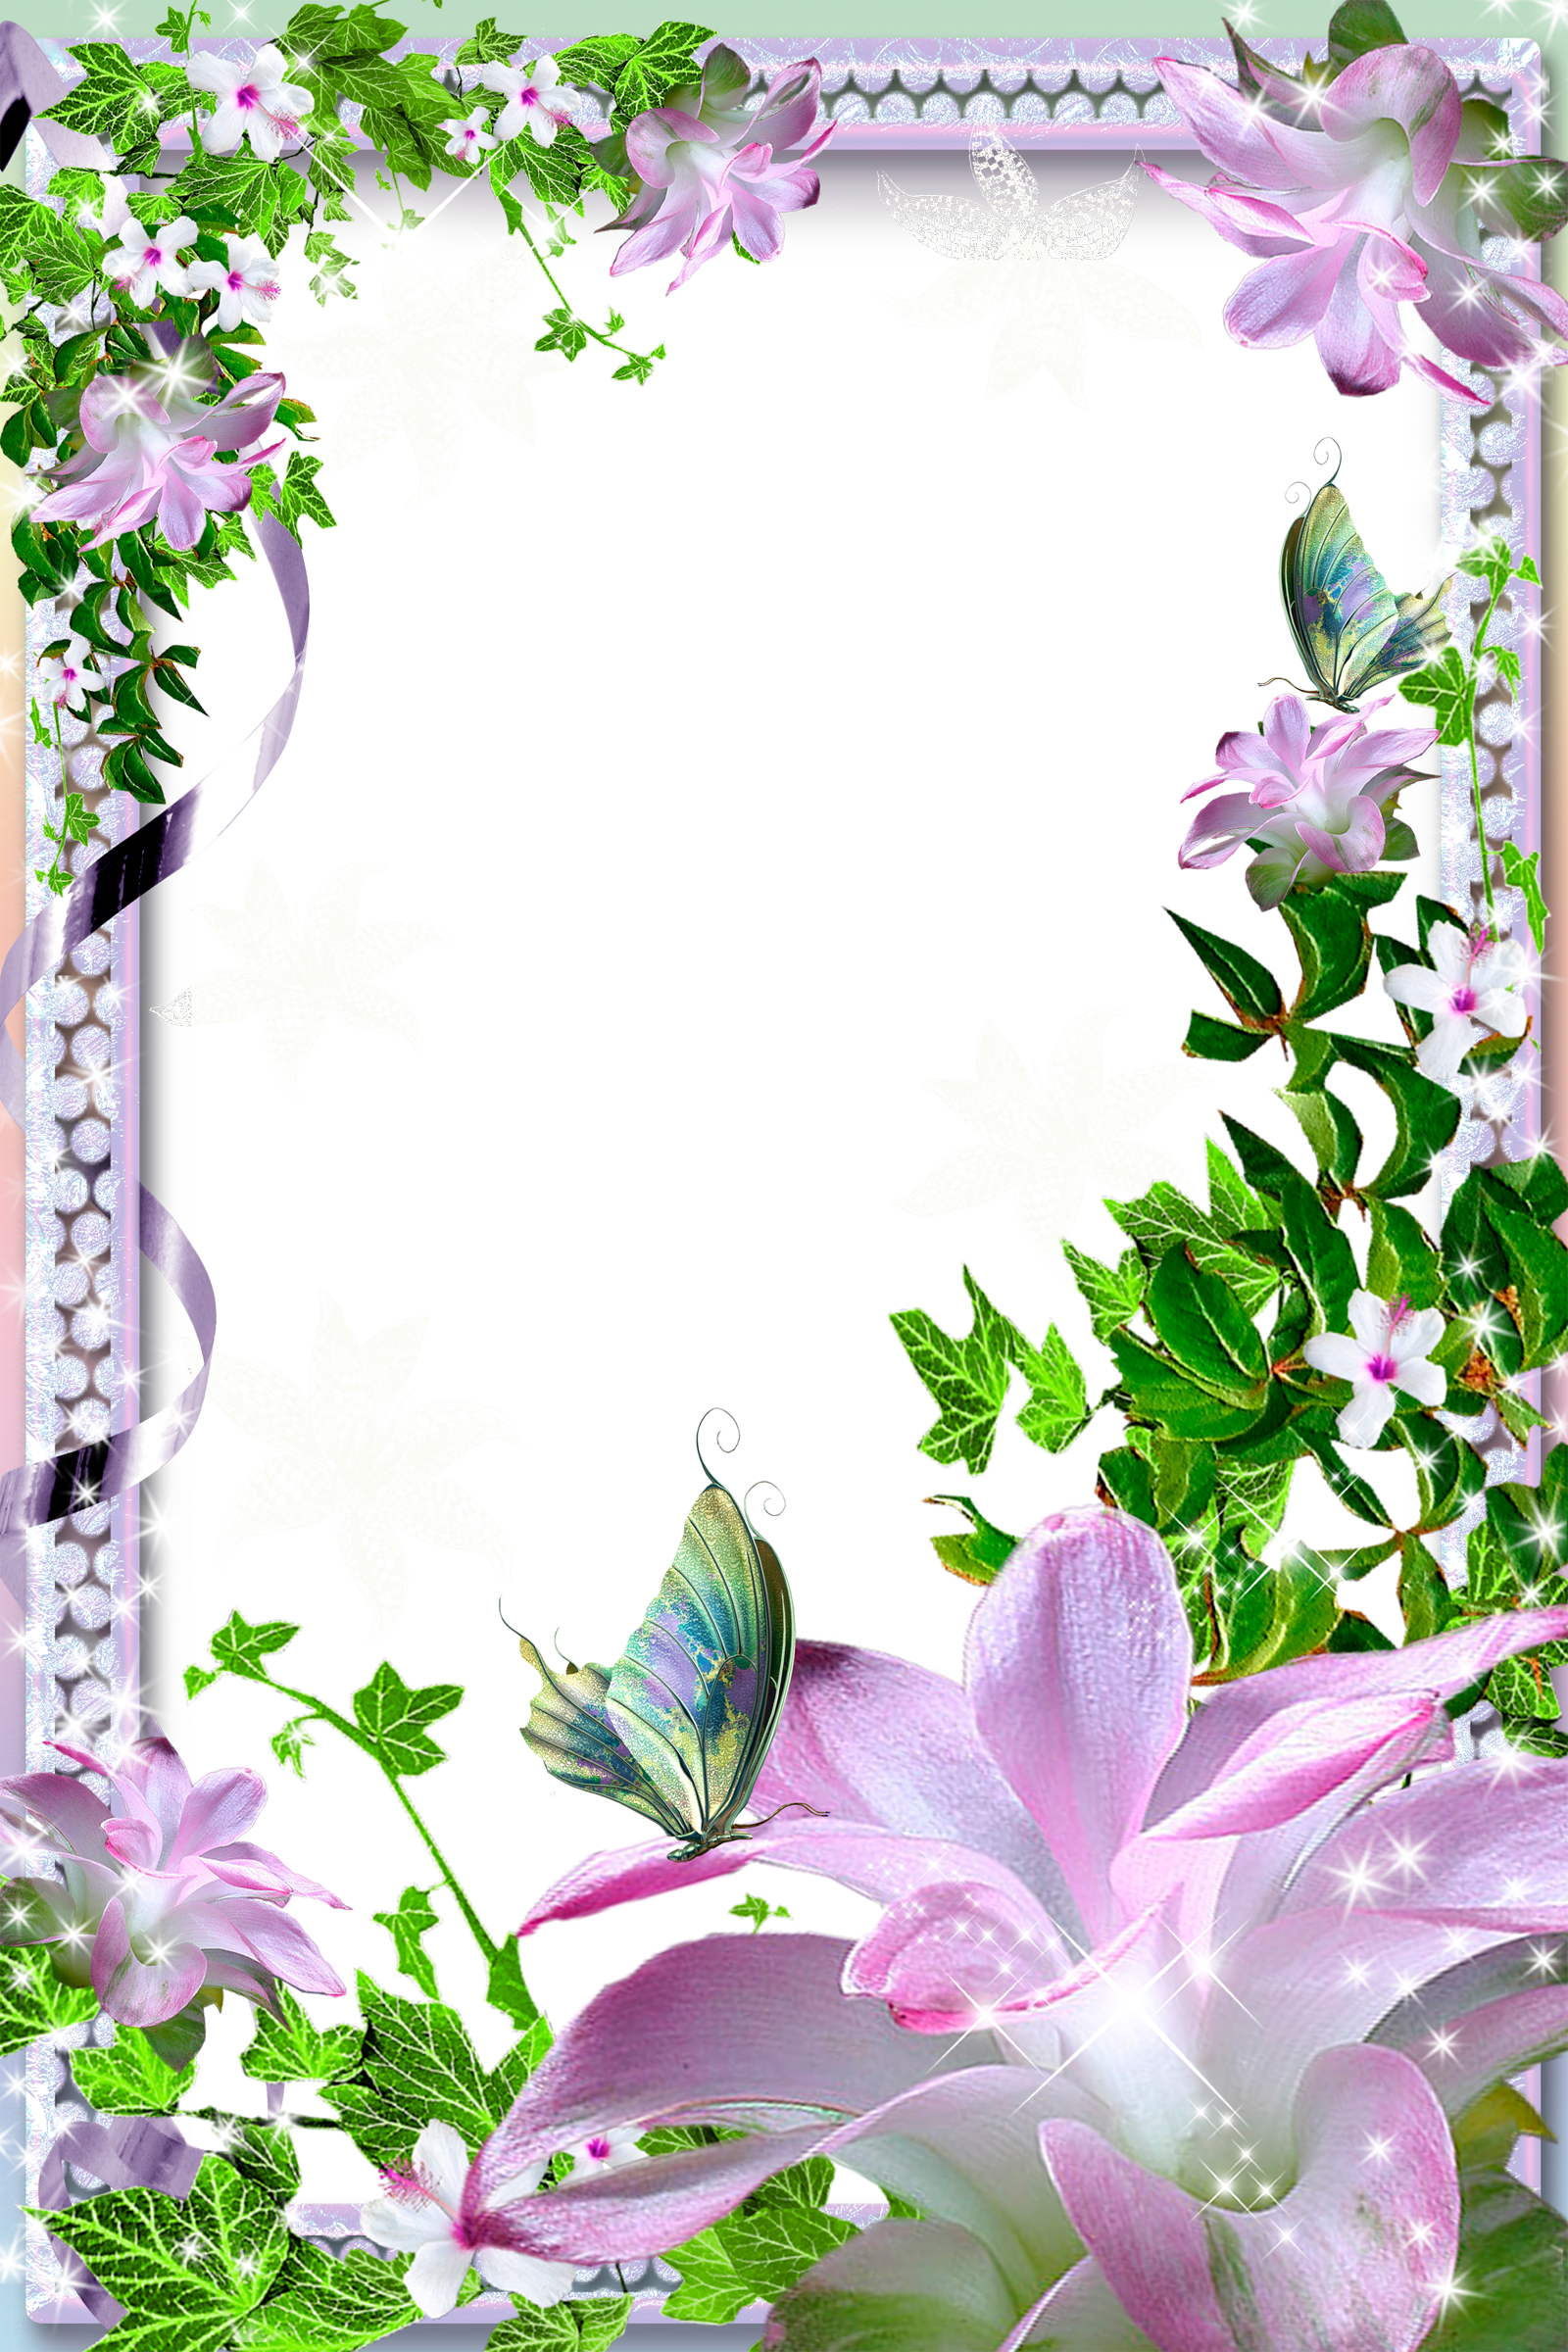 image library download Lilies clipart frame. Transparent png photo with.